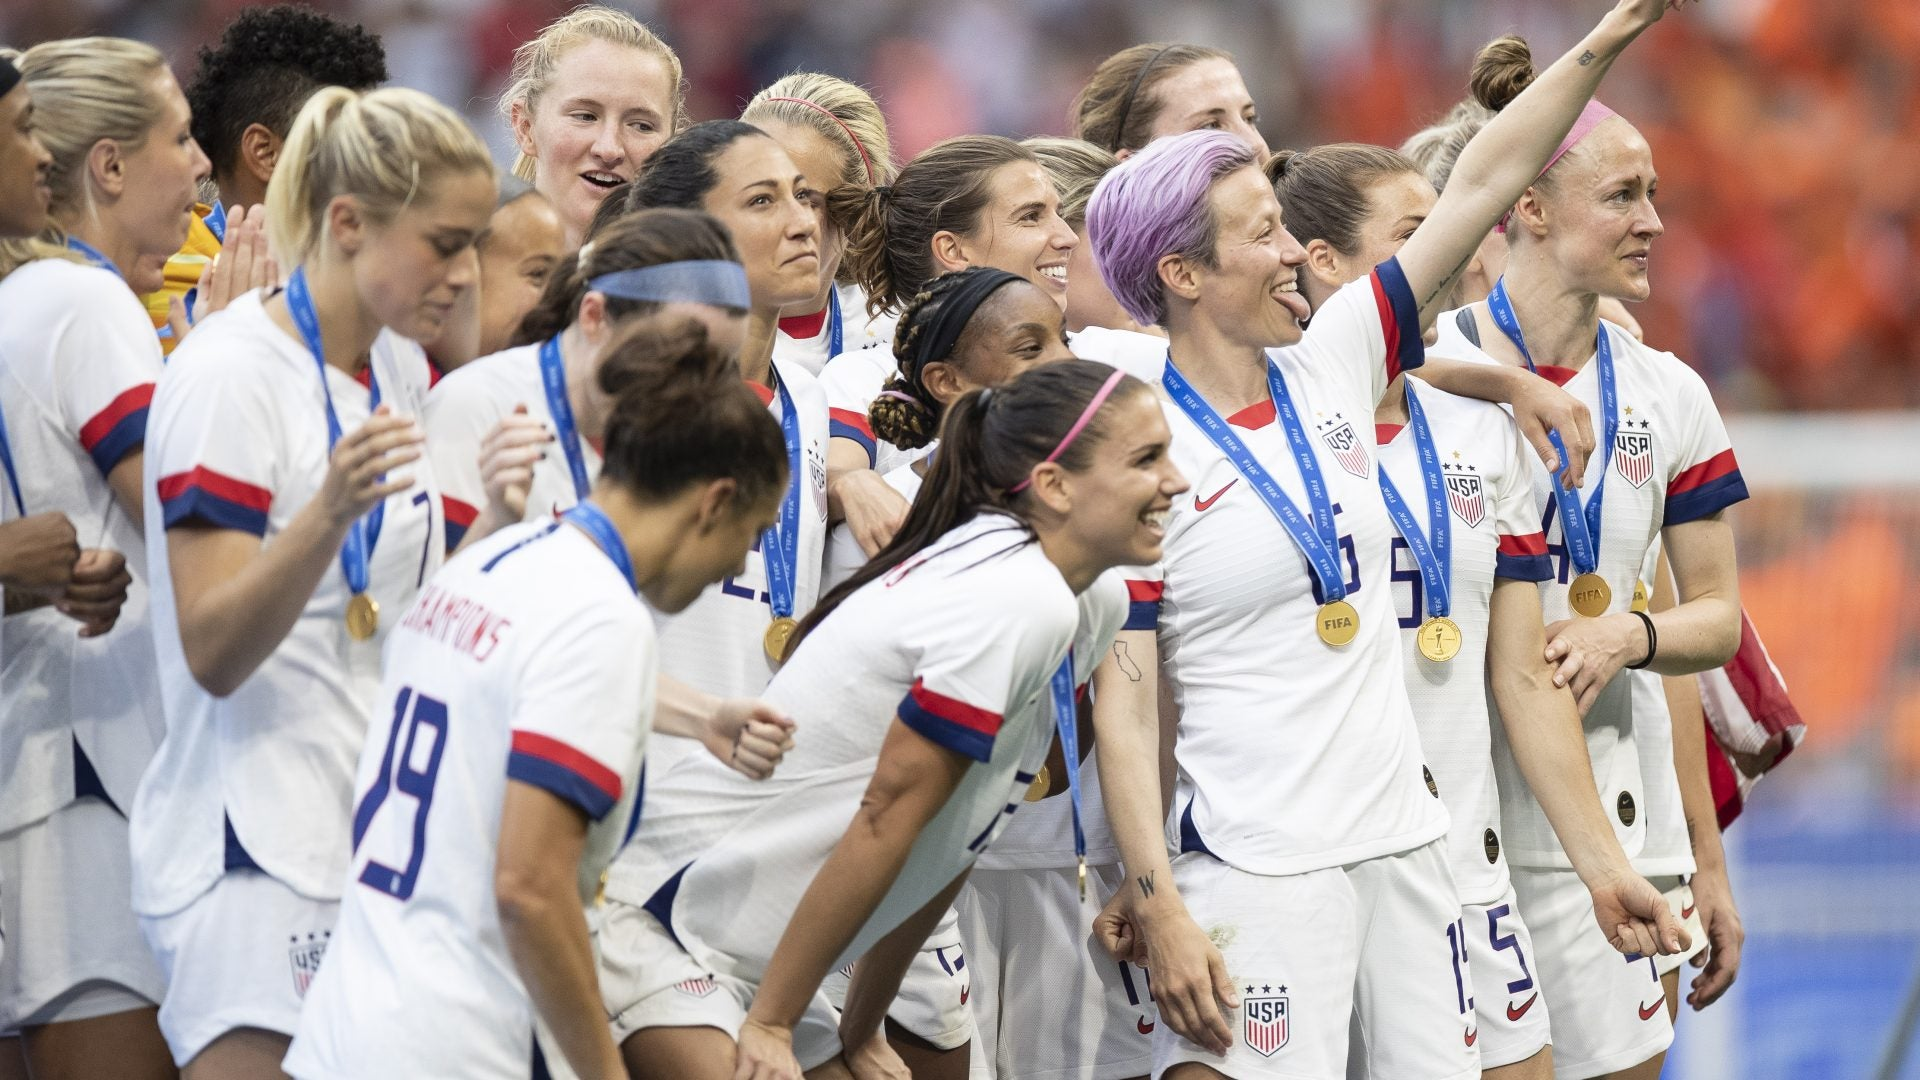 U.S. Women's Soccer Fans Shout 'F–k Trump' During Live World Cup Broadcast